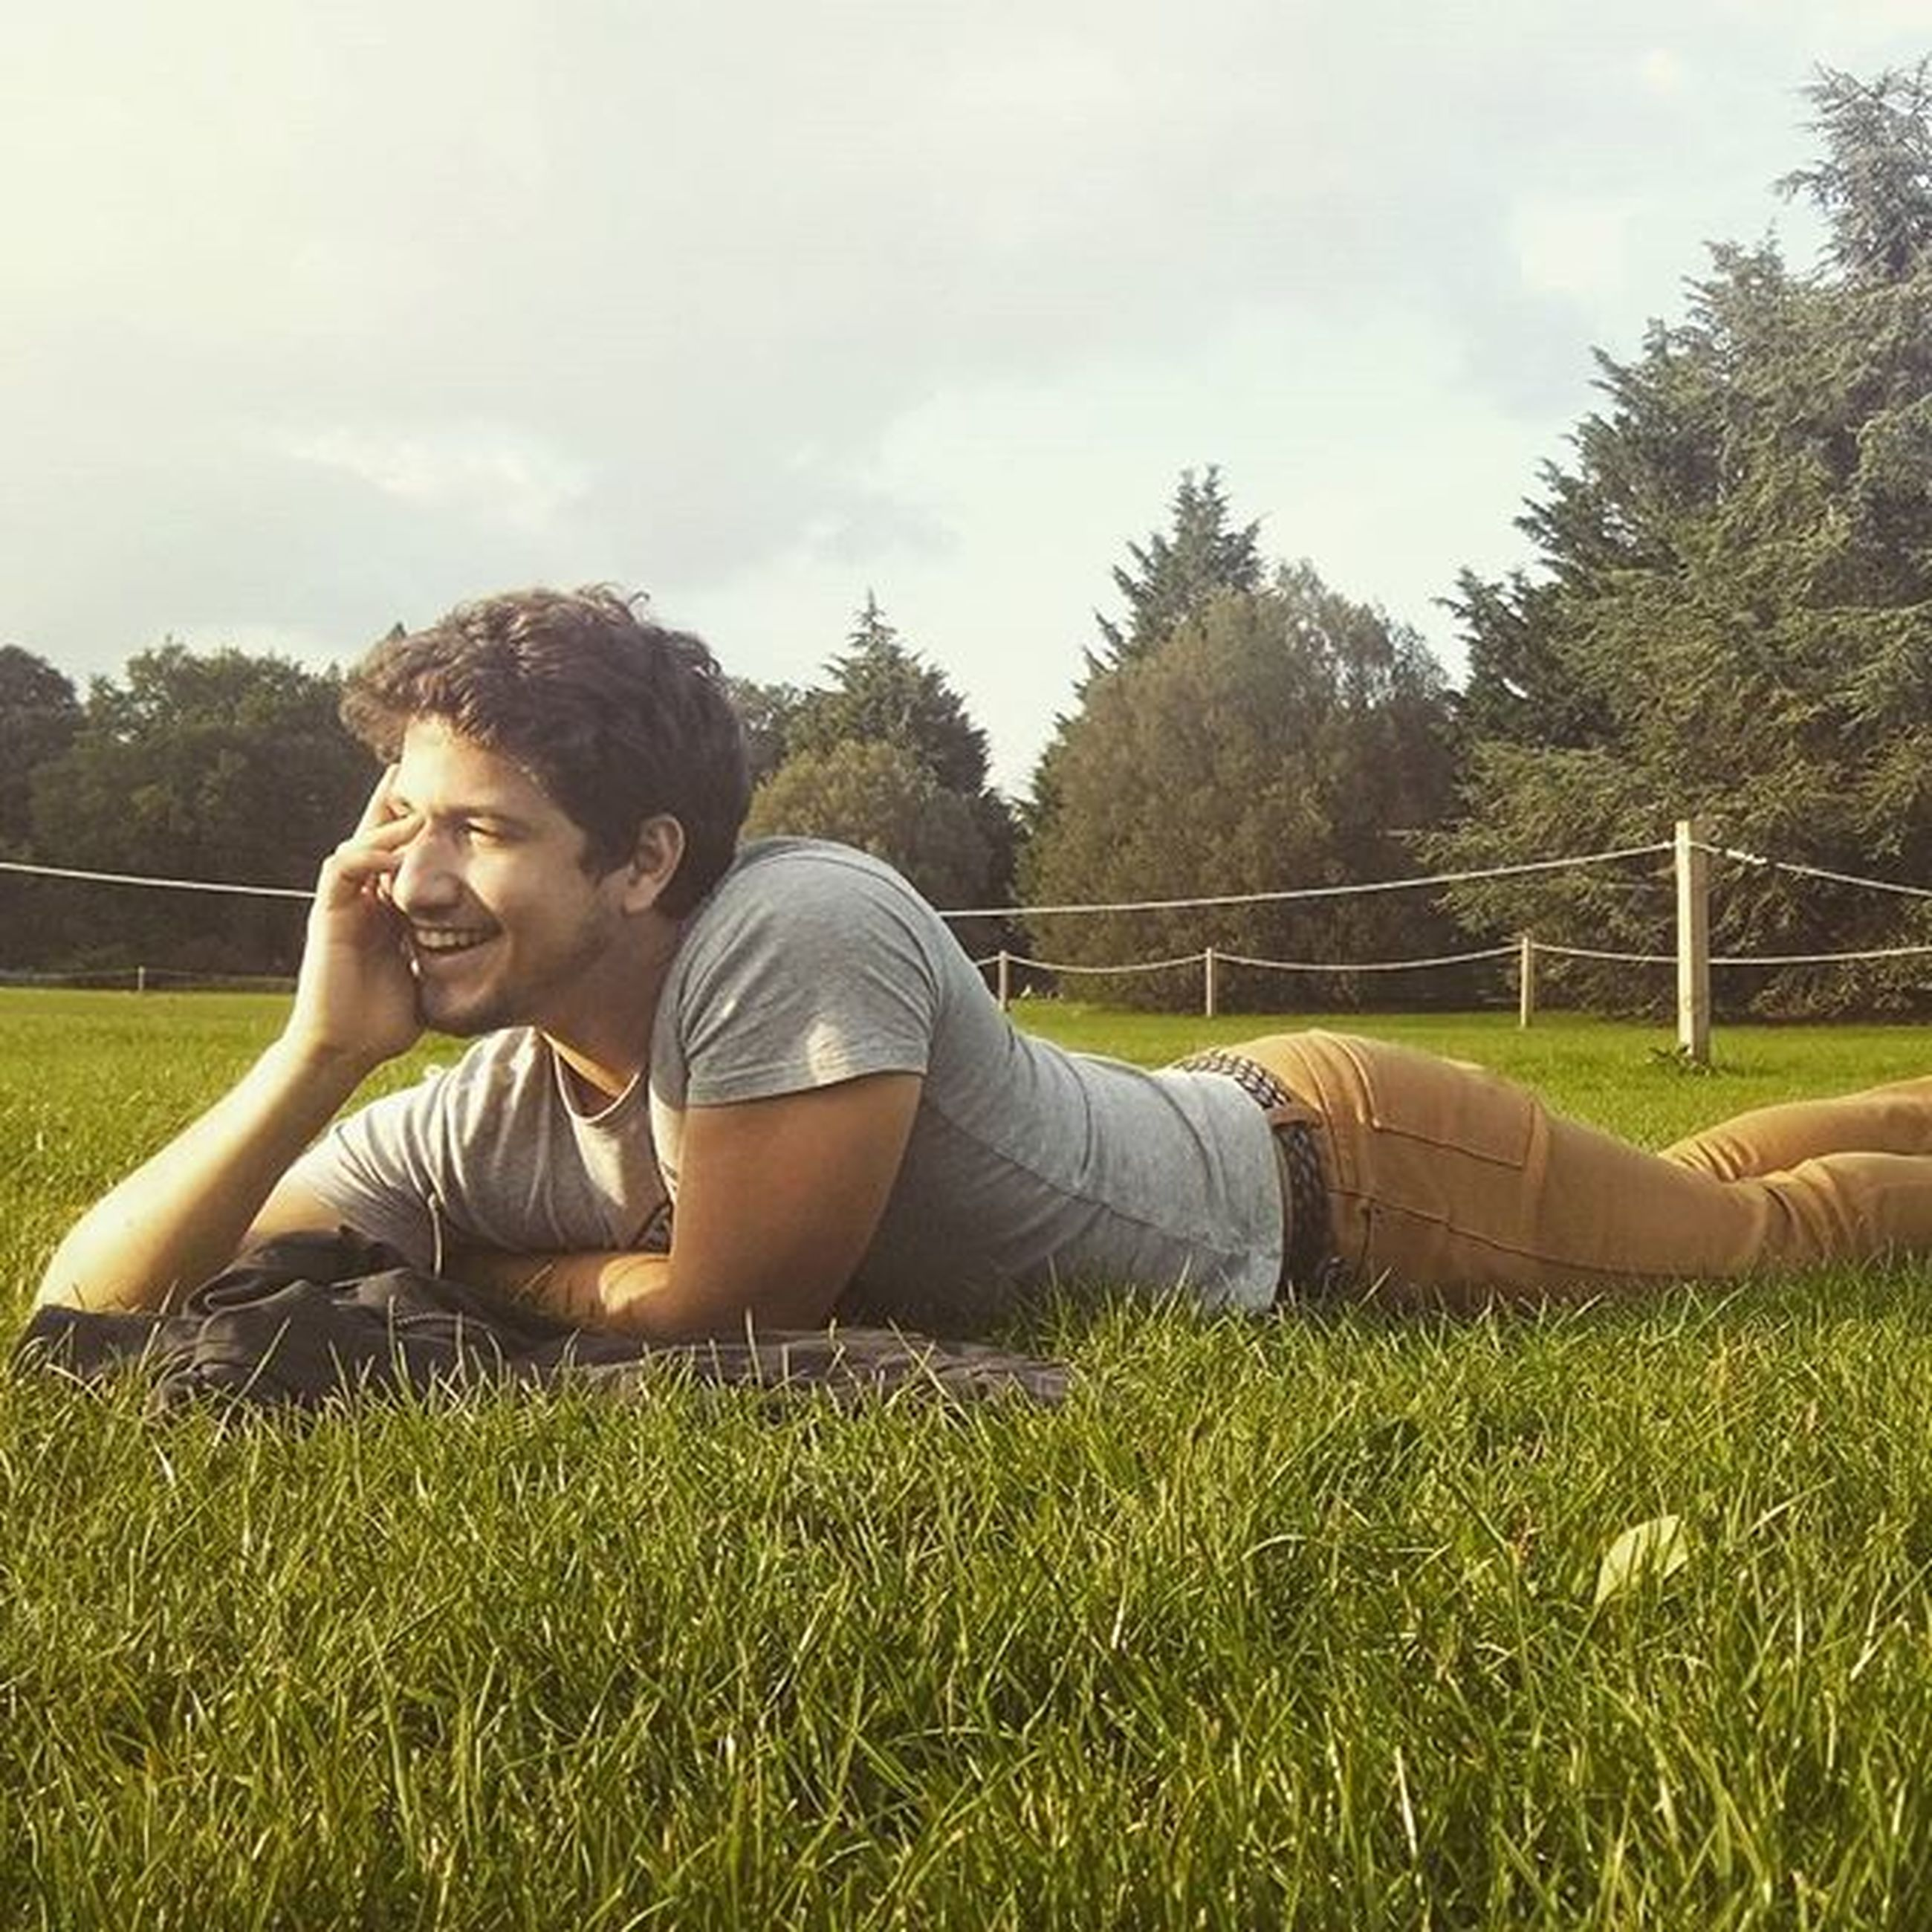 grass, lifestyles, leisure activity, tree, relaxation, person, young adult, casual clothing, sky, sitting, field, grassy, park - man made space, young women, full length, day, green color, lawn